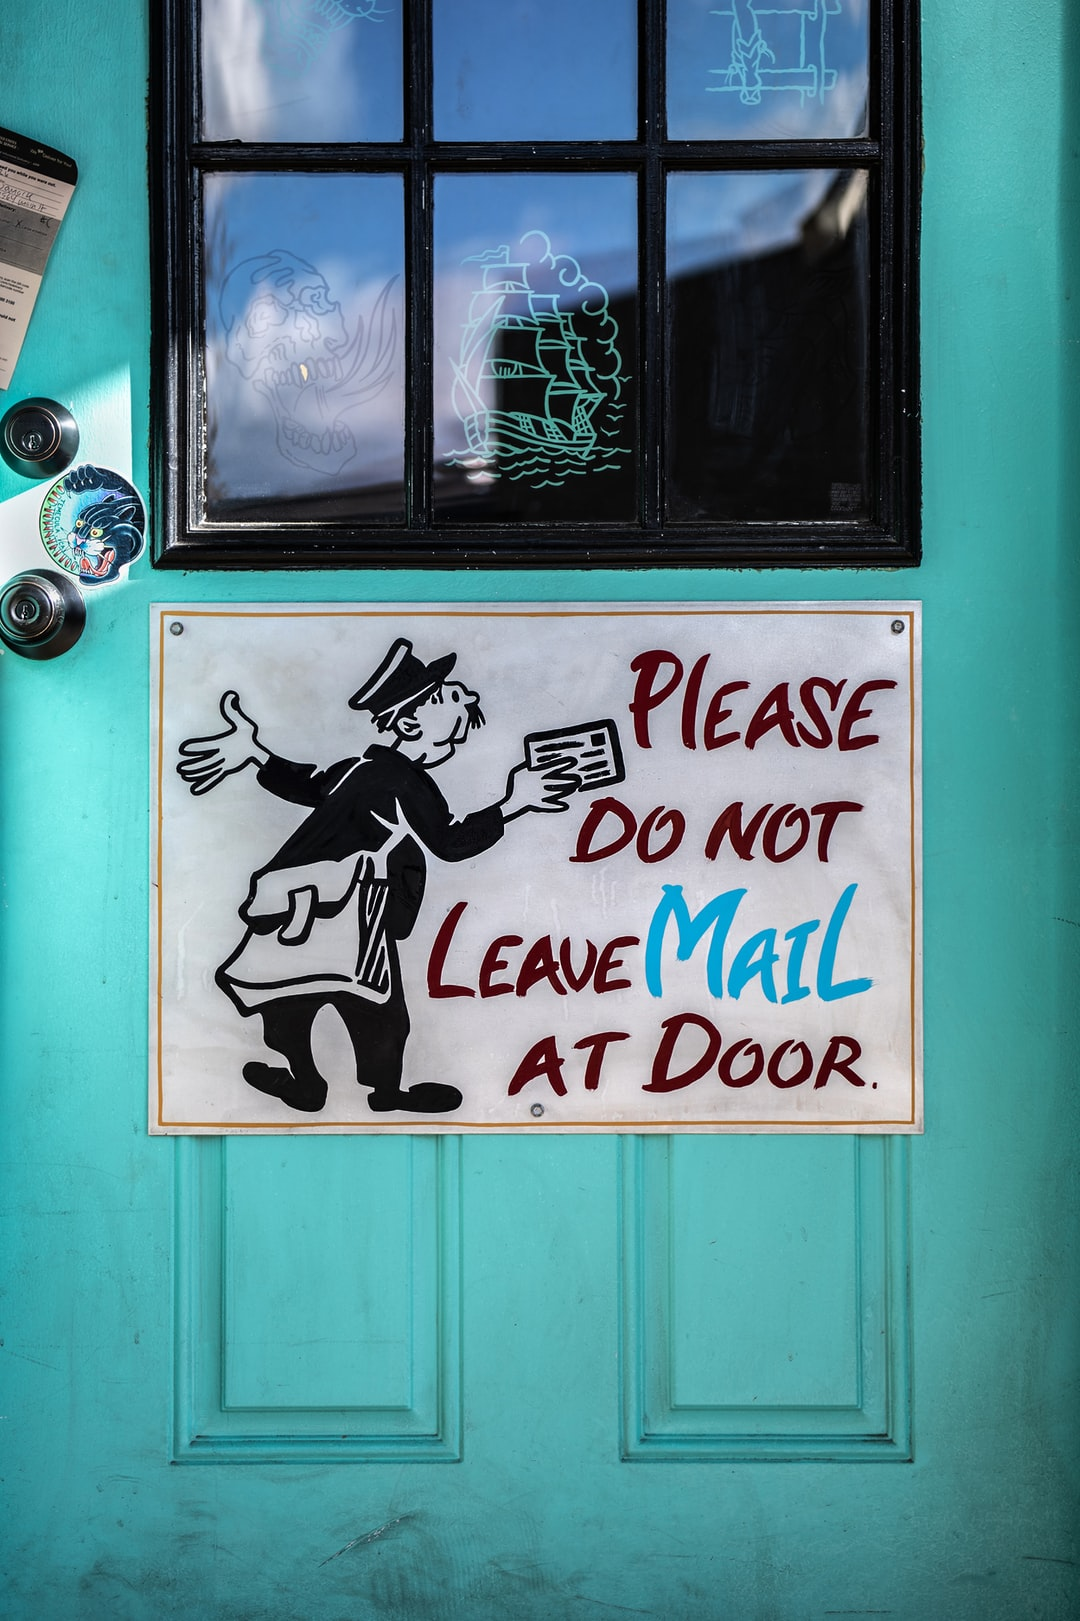 Do not leave mail at door.